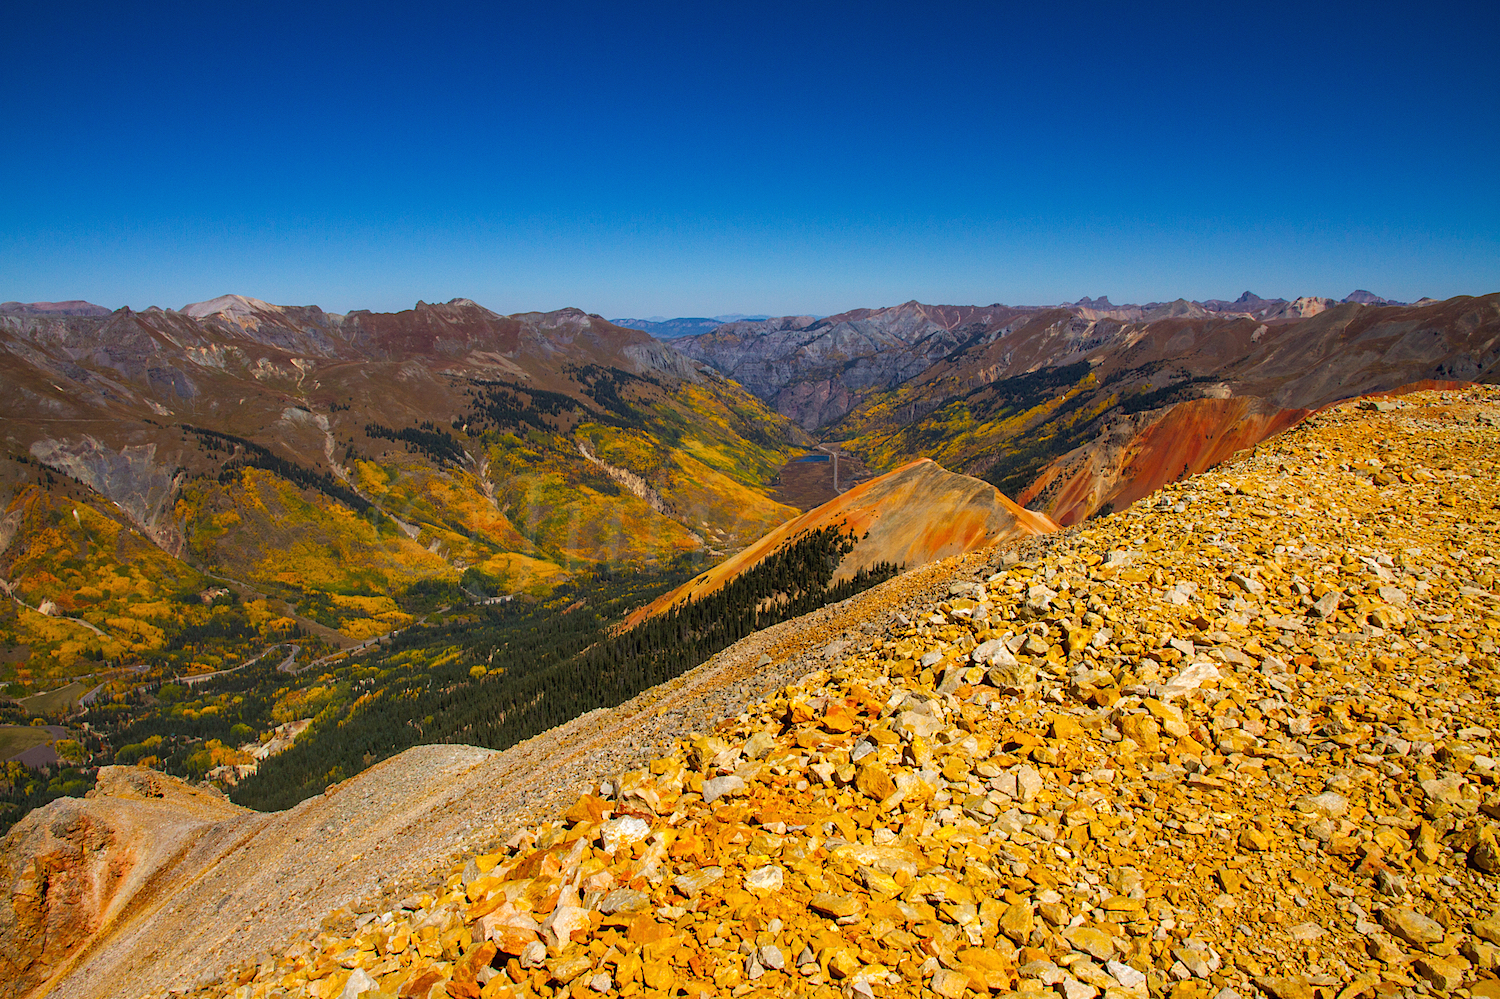 Red Mountain #3, Image #1278